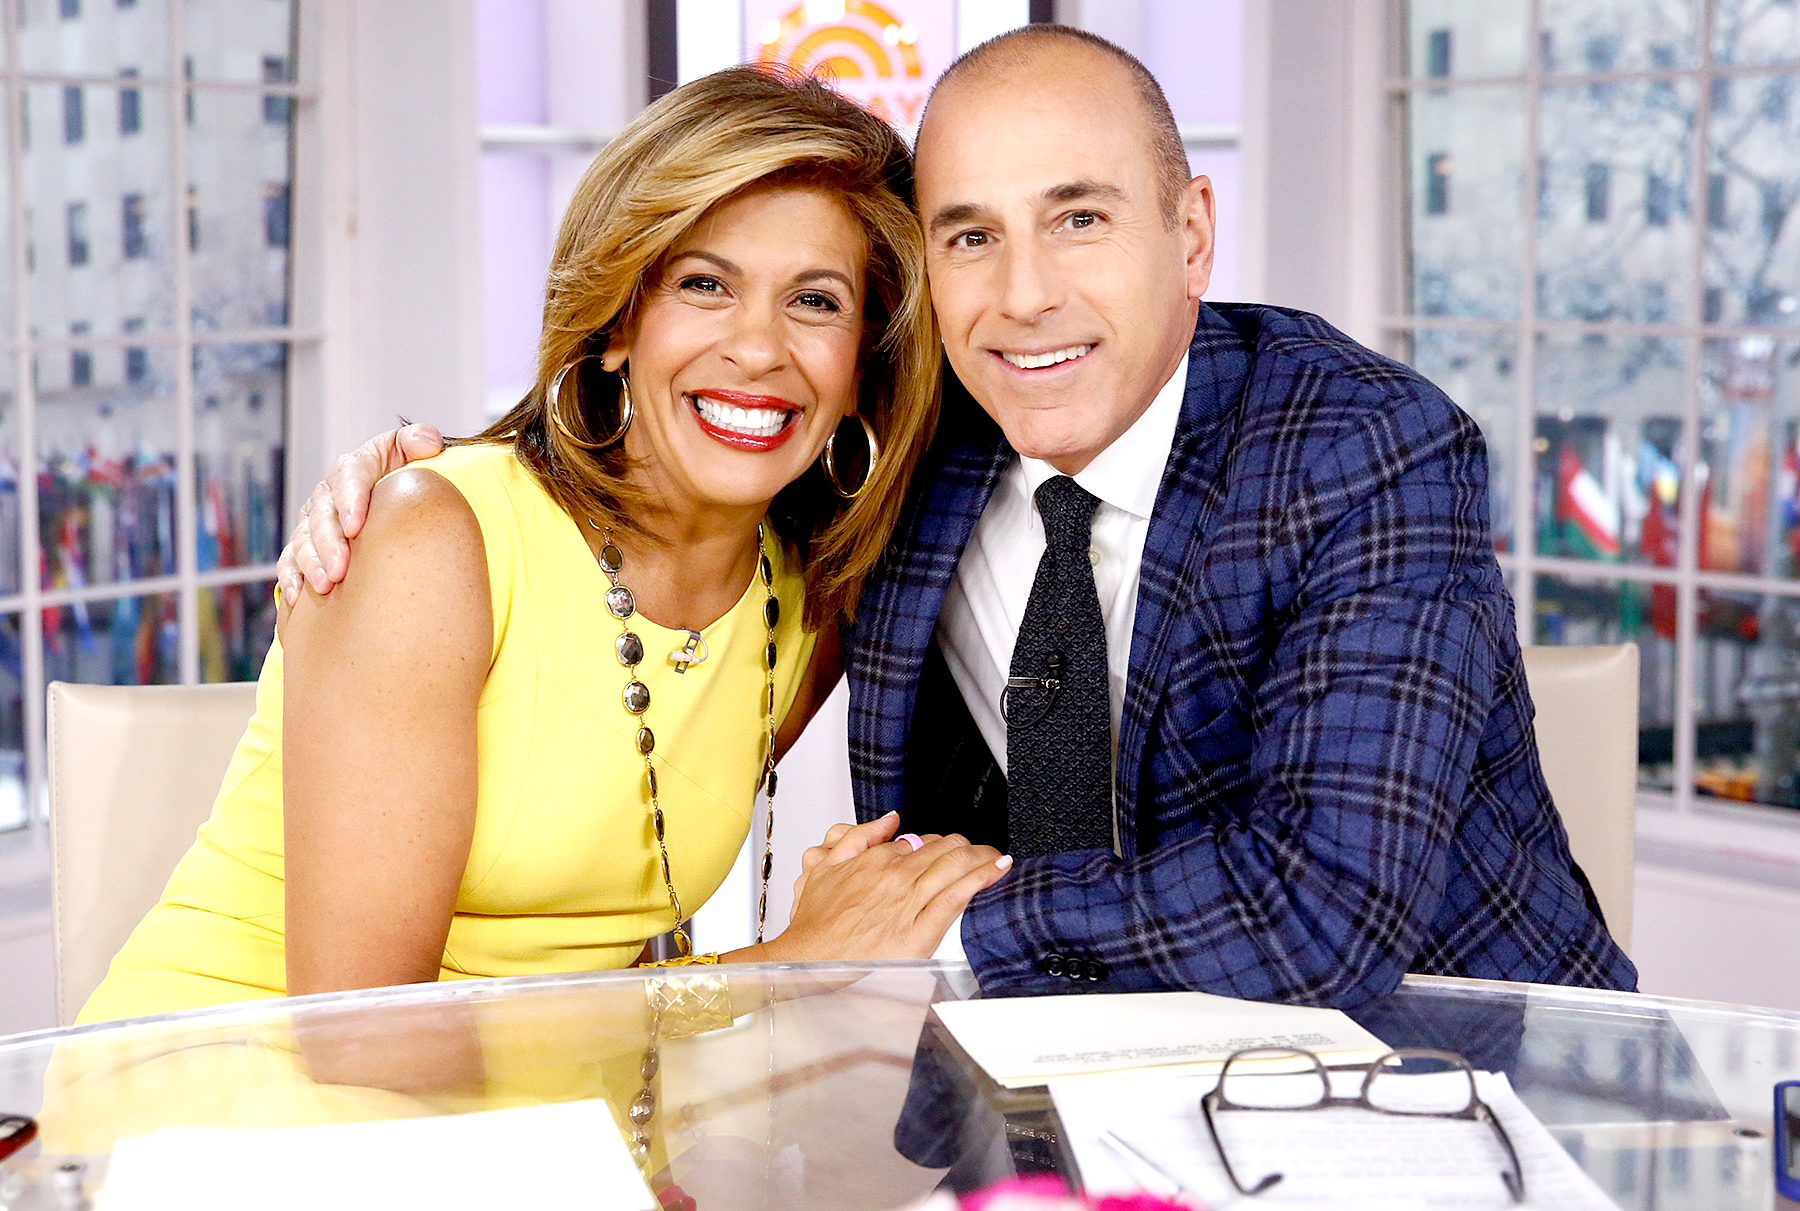 Hoda Kotb Replaces Fired Anchor, Talks Sexual Harassment Allegations